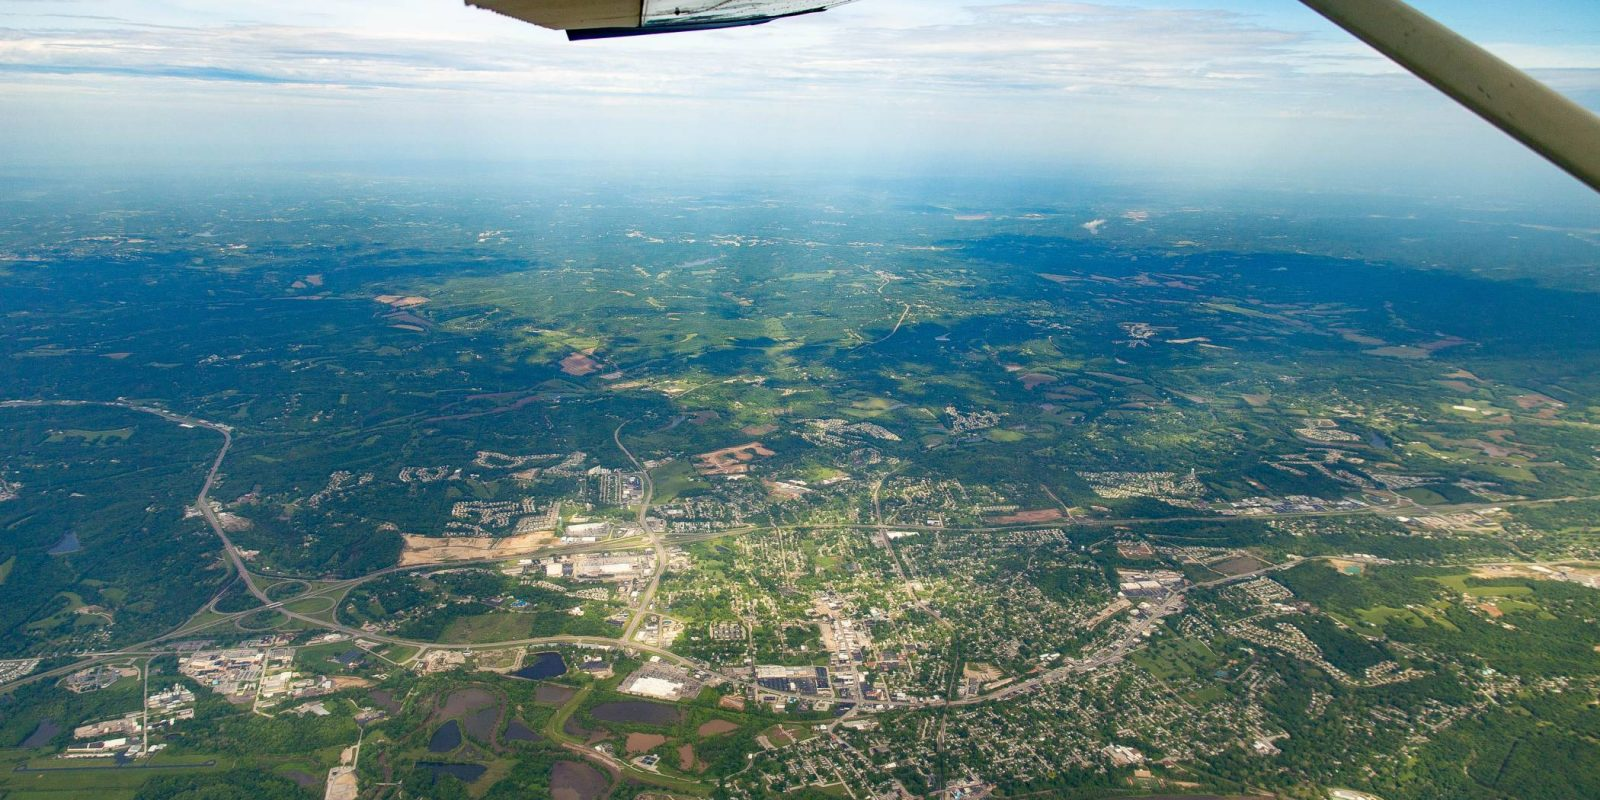 Aerial view from a skydiving plane at Skydive St Louis